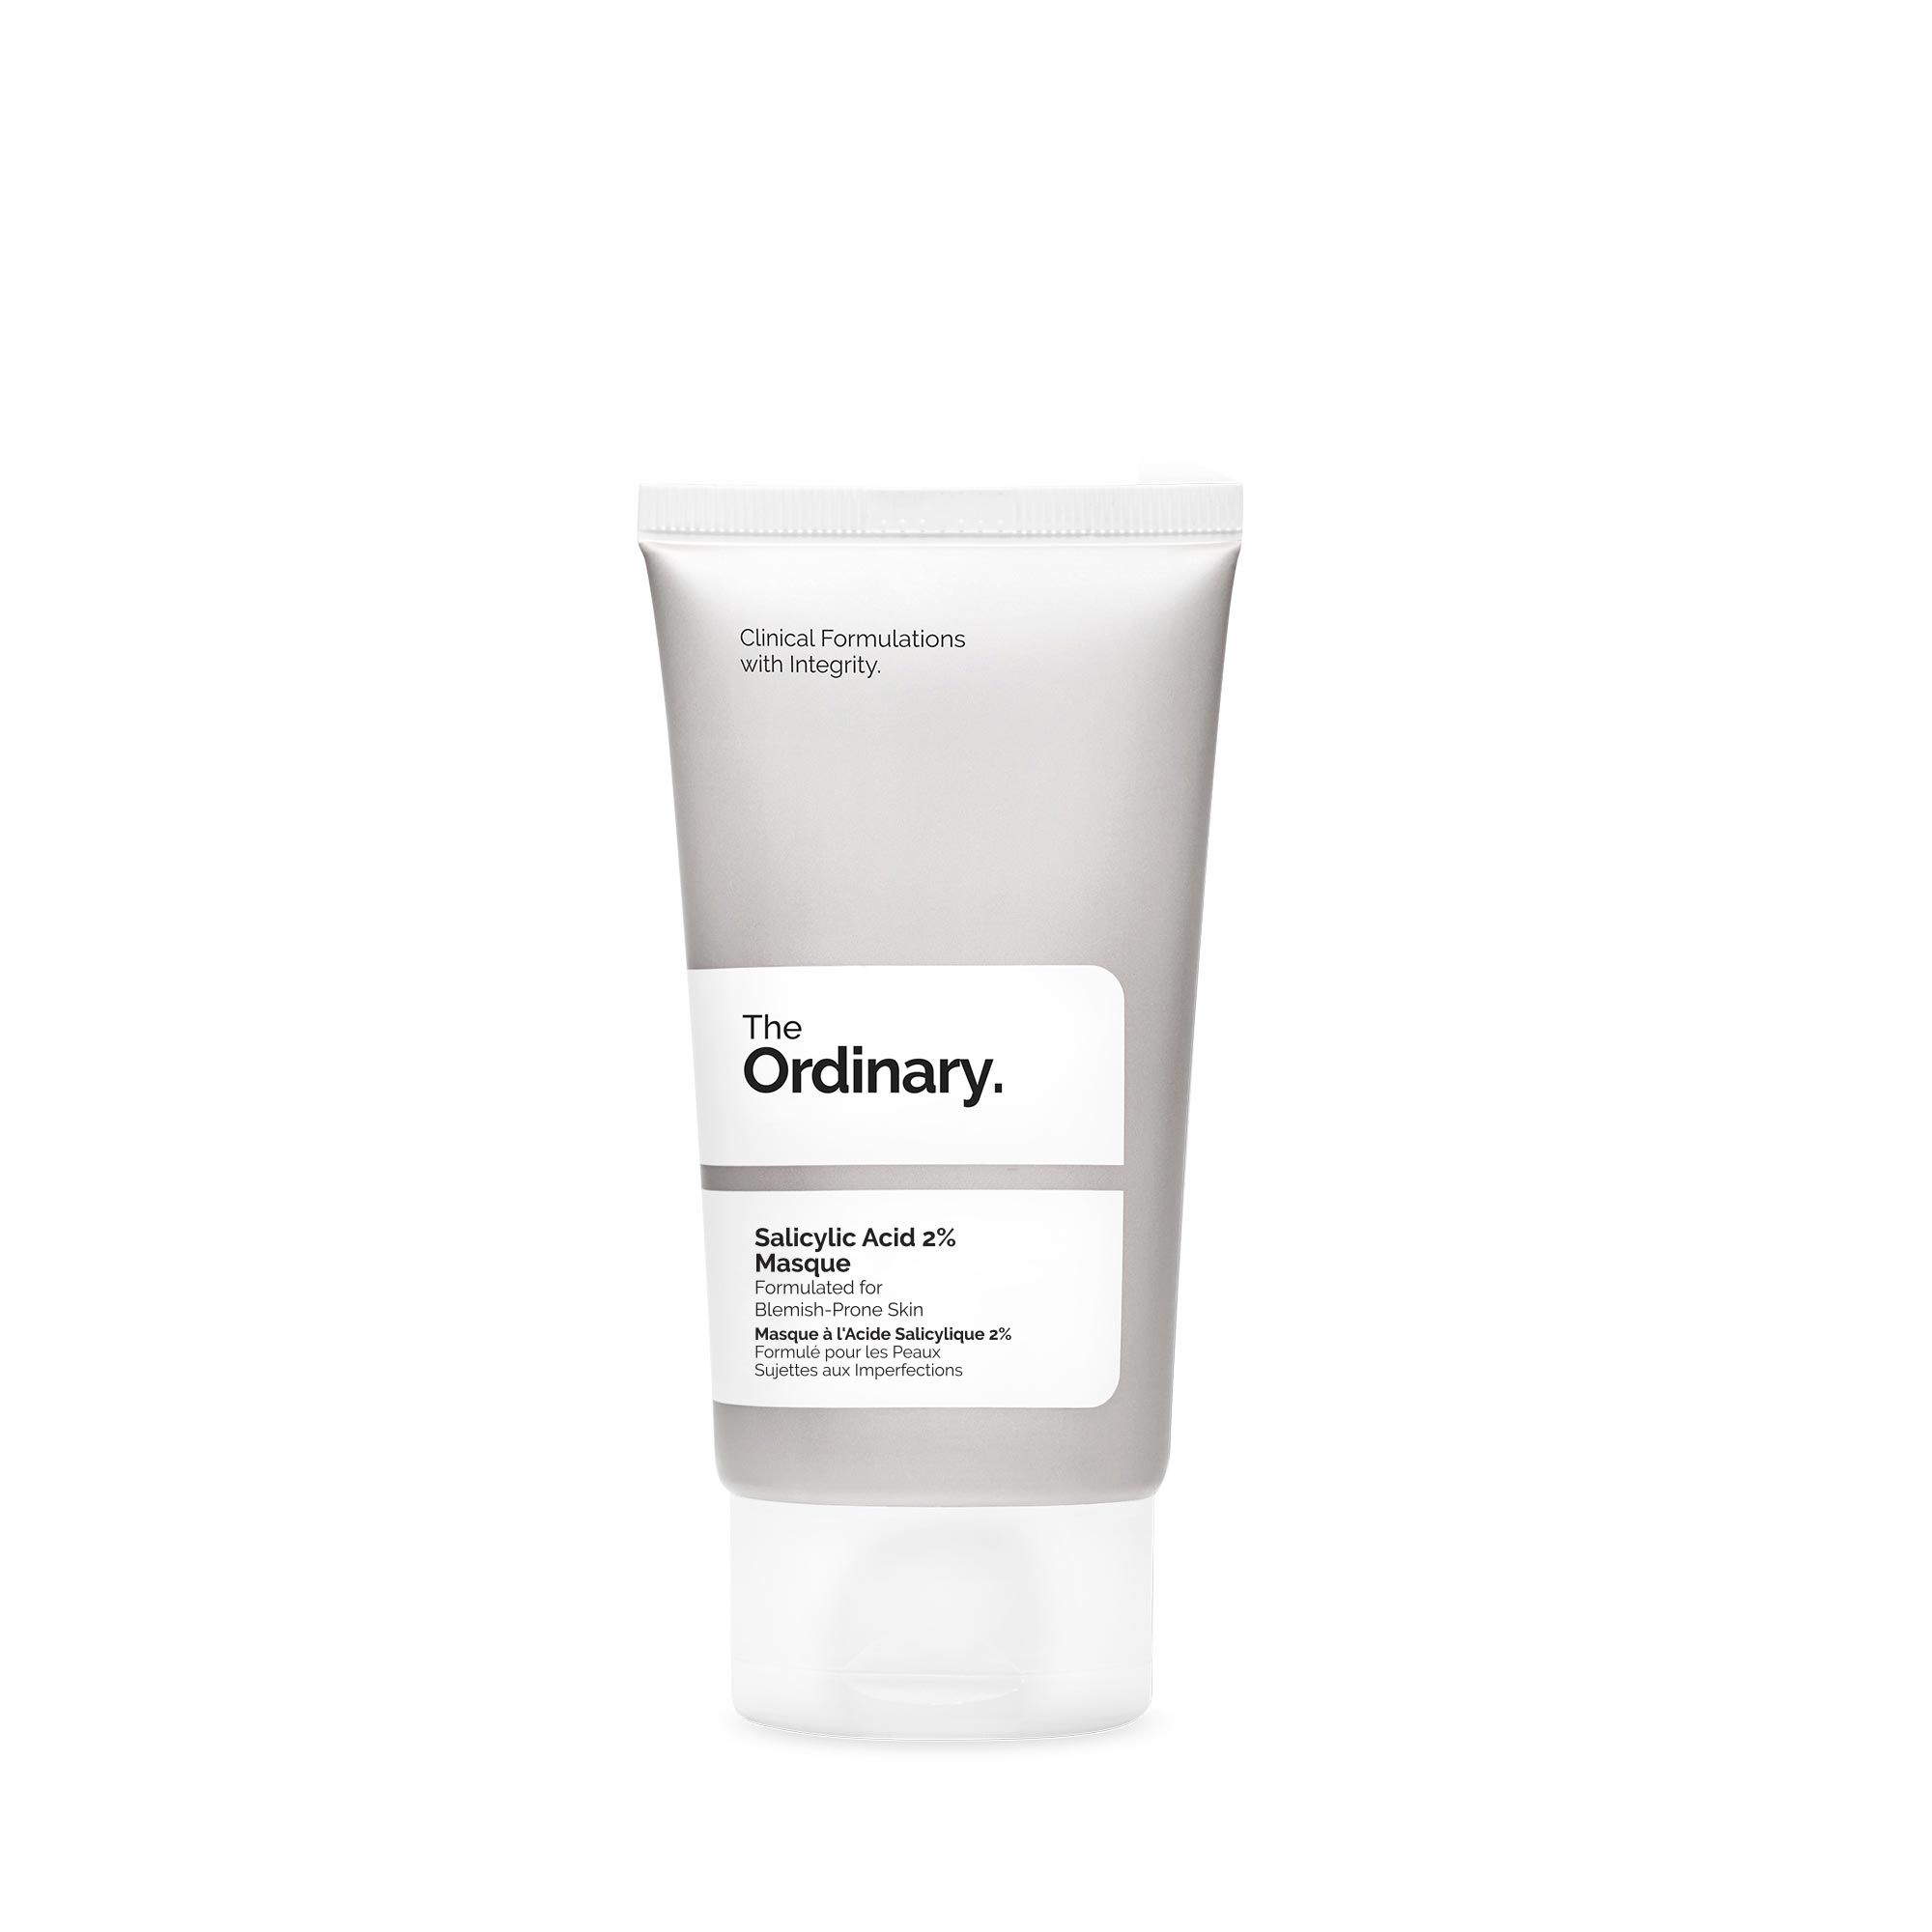 The New Ordinary Masque